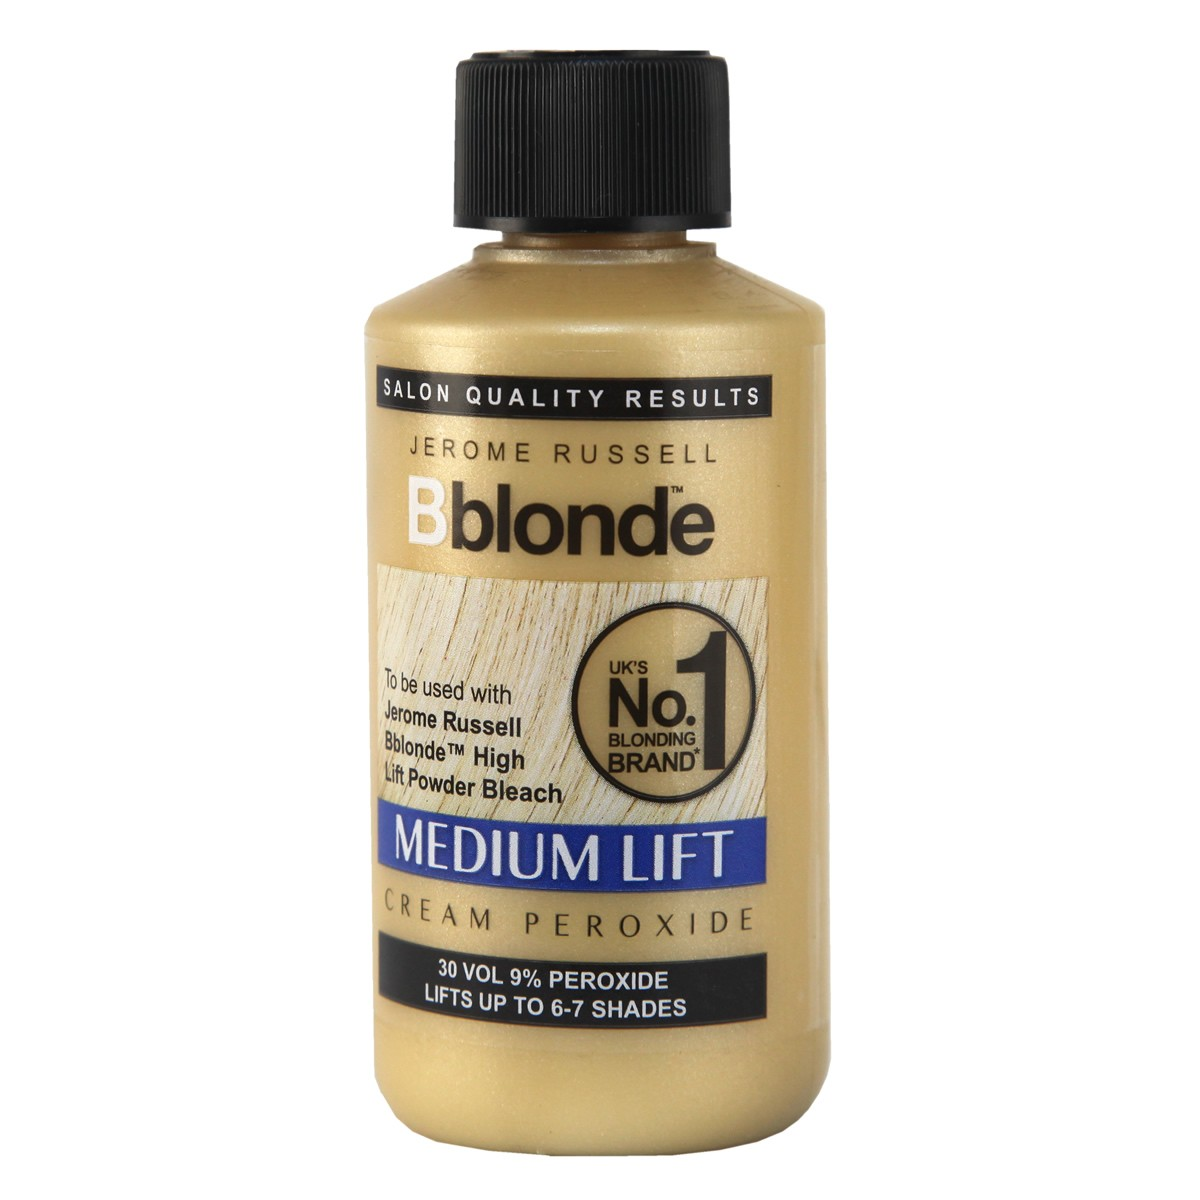 Jerome Russell Bblonde Medium Lift Cream Peroxide 30 Vol 9%